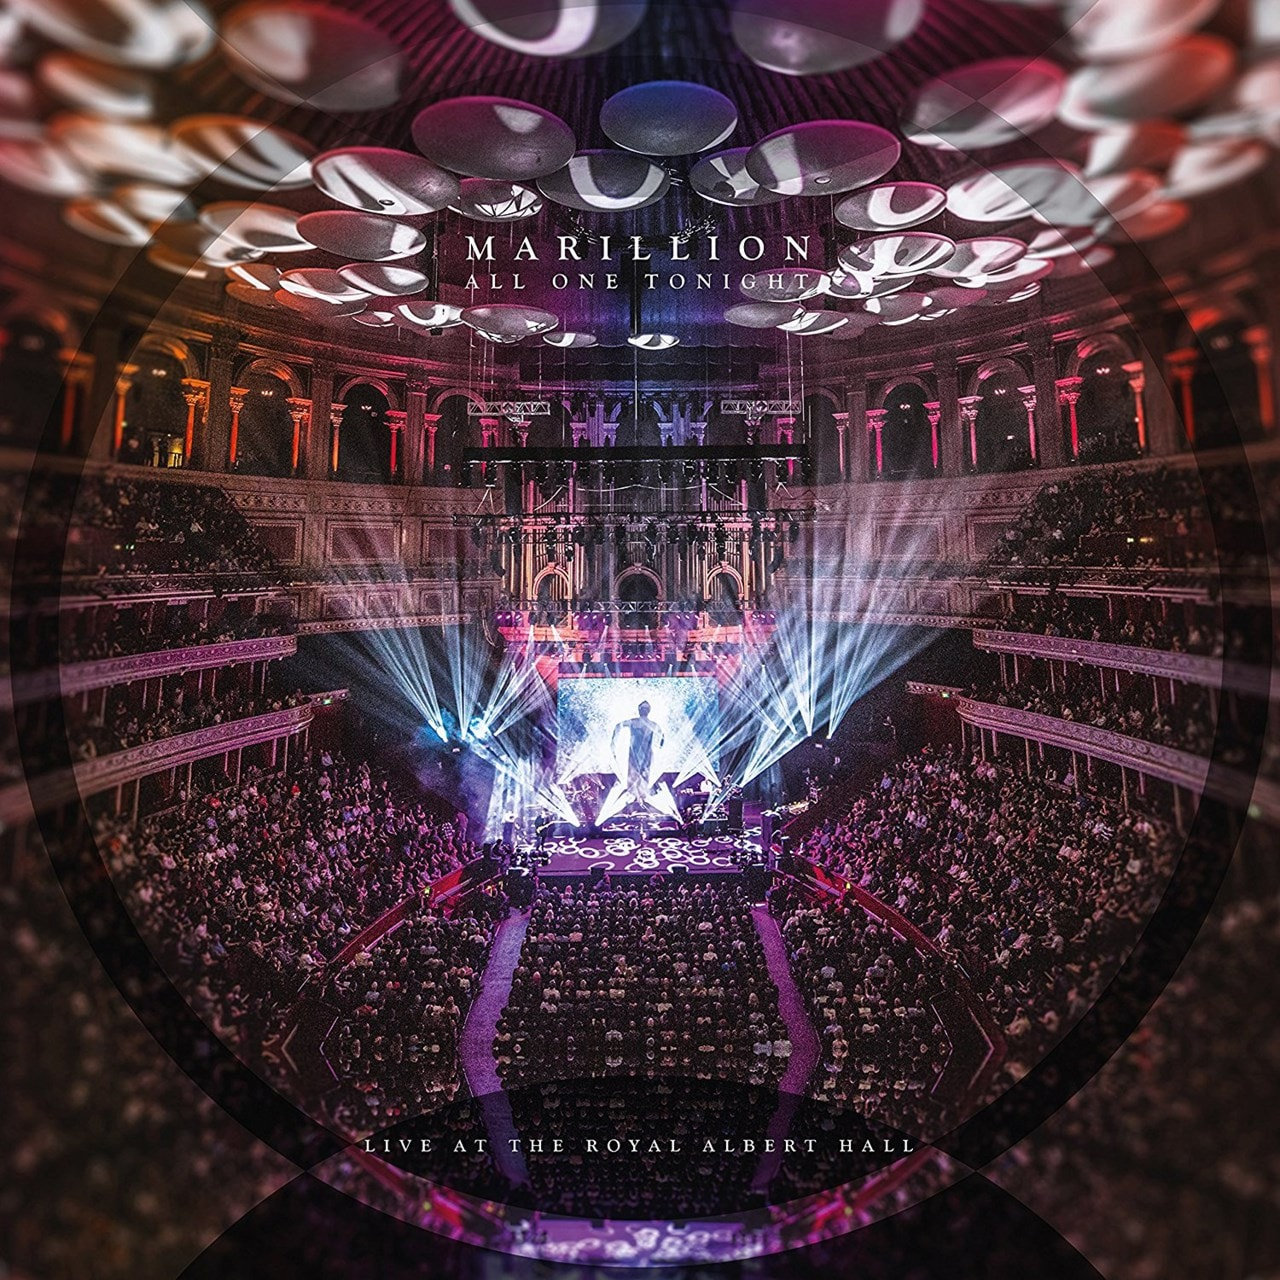 All One Tonight: Live at the Royal Albert Hall - 1